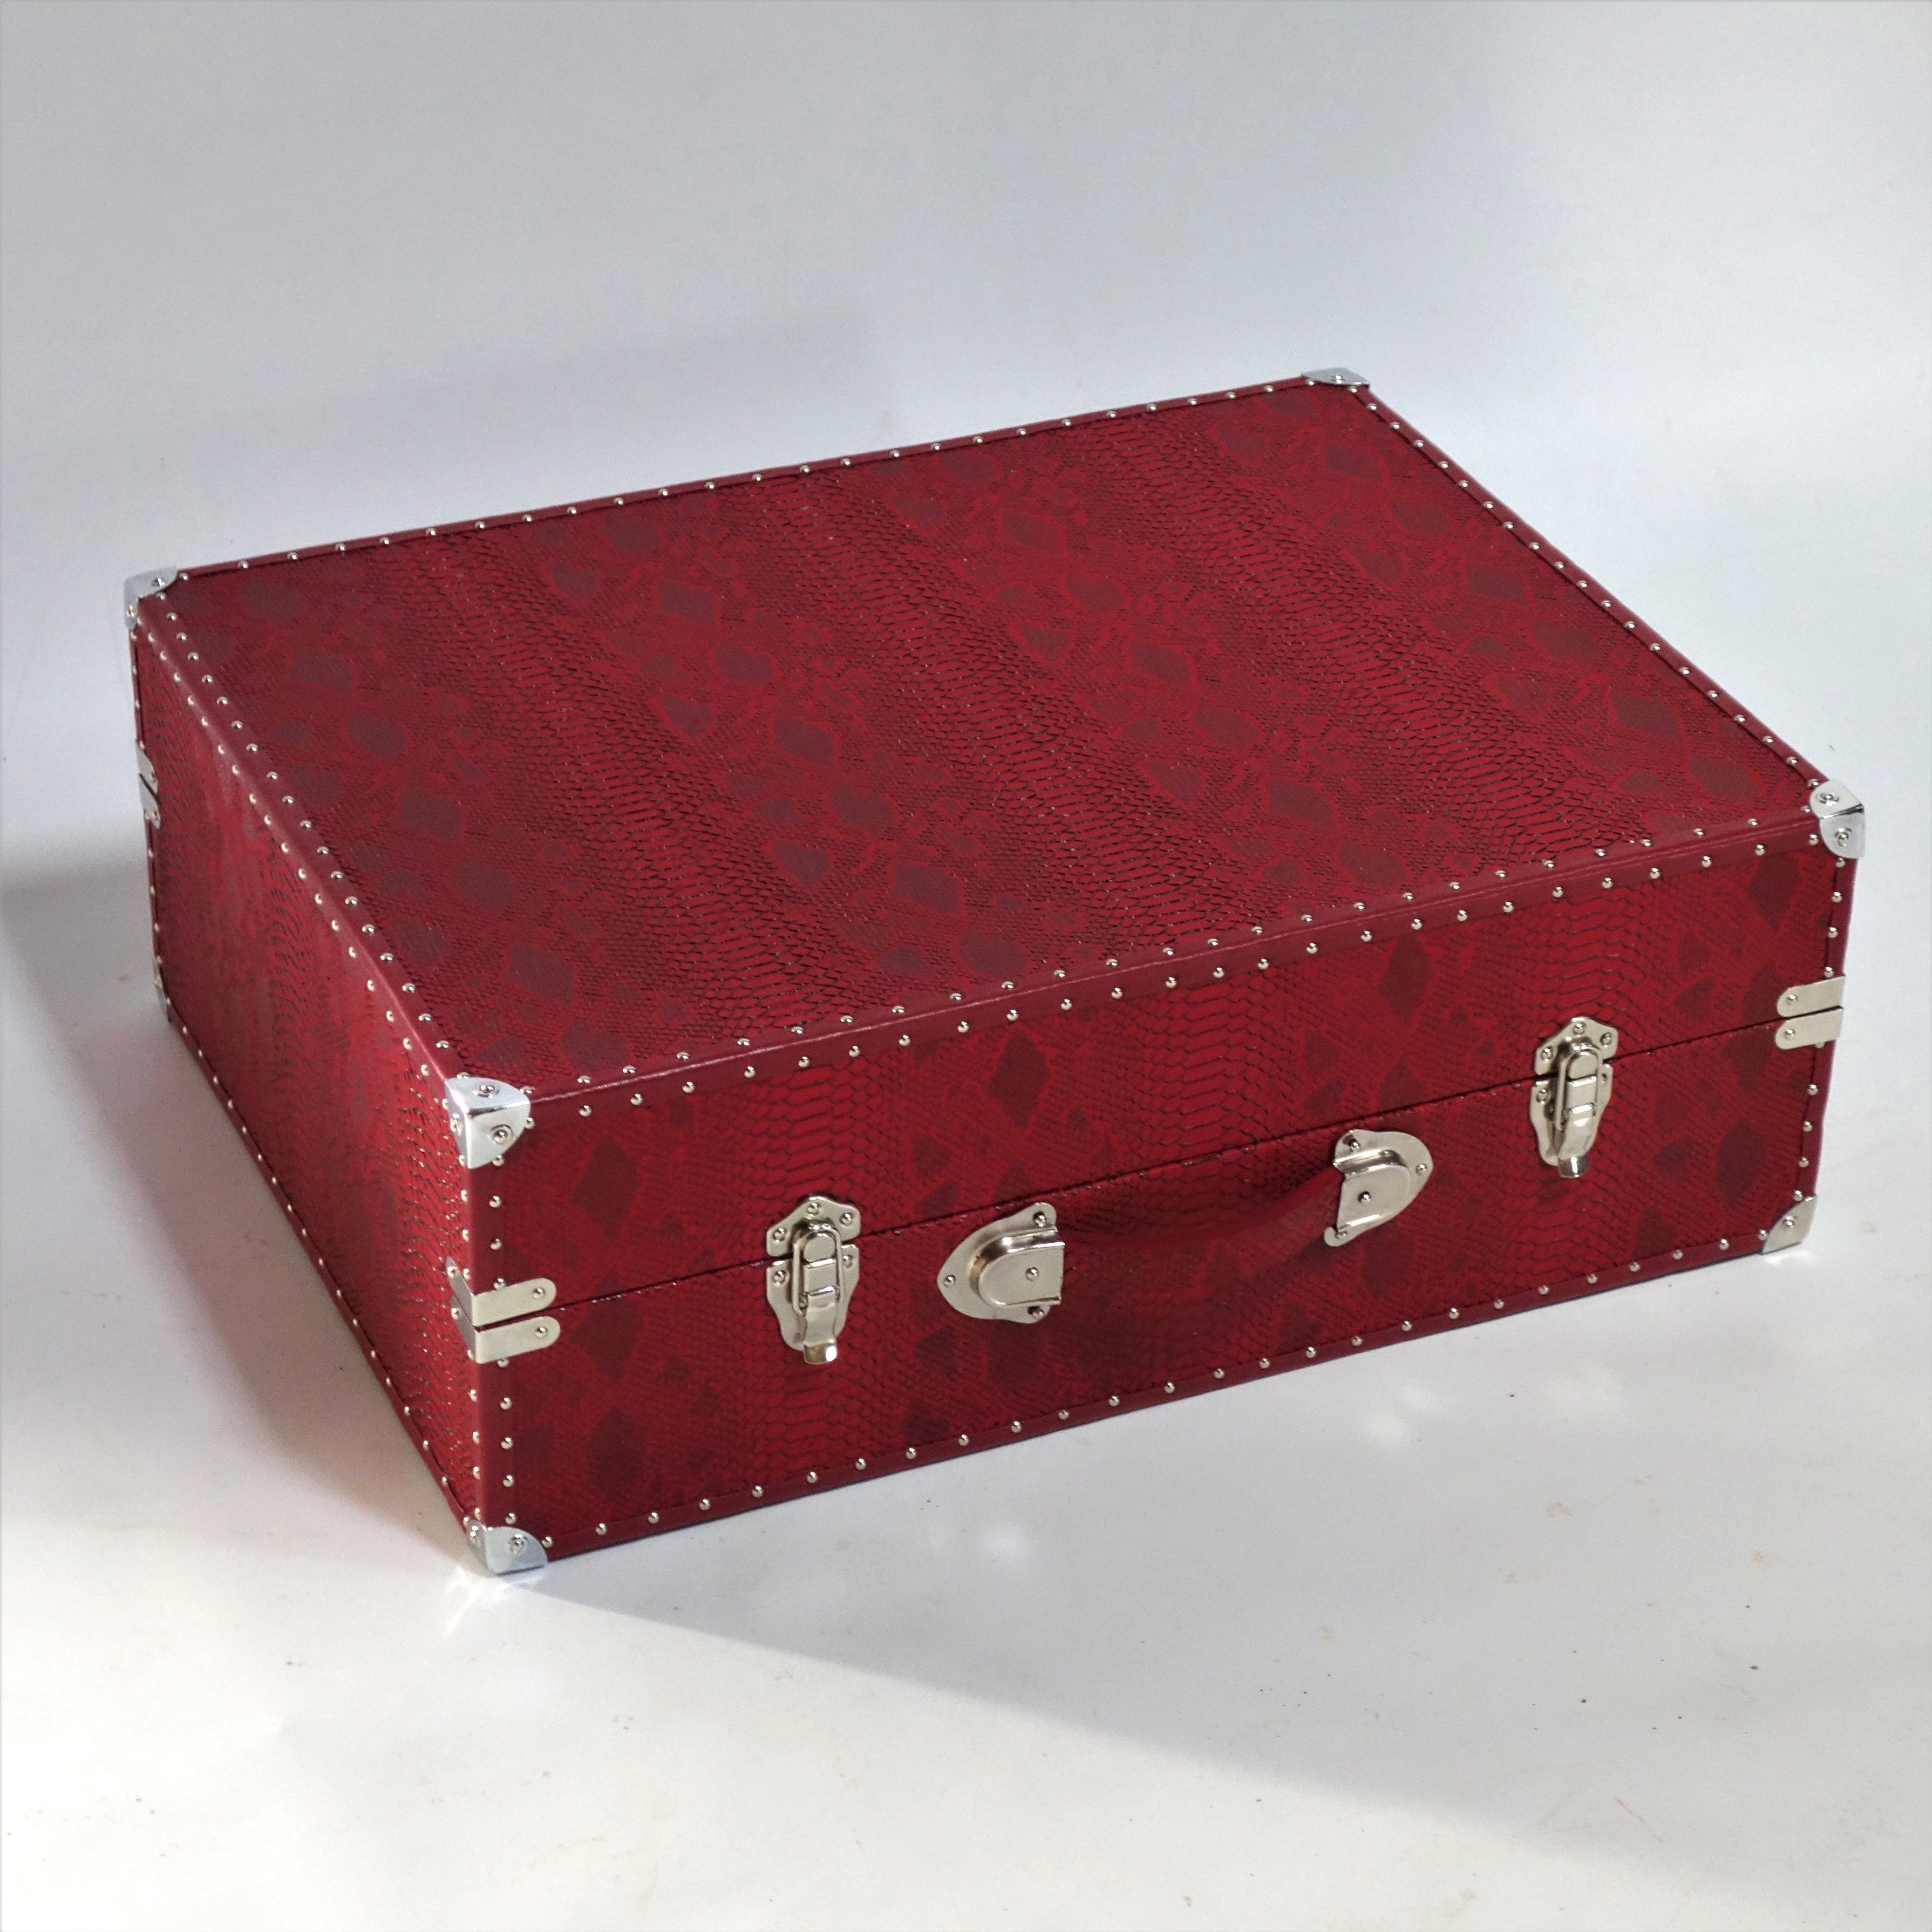 Hand made luxury snakeskin dog bed travel case by The